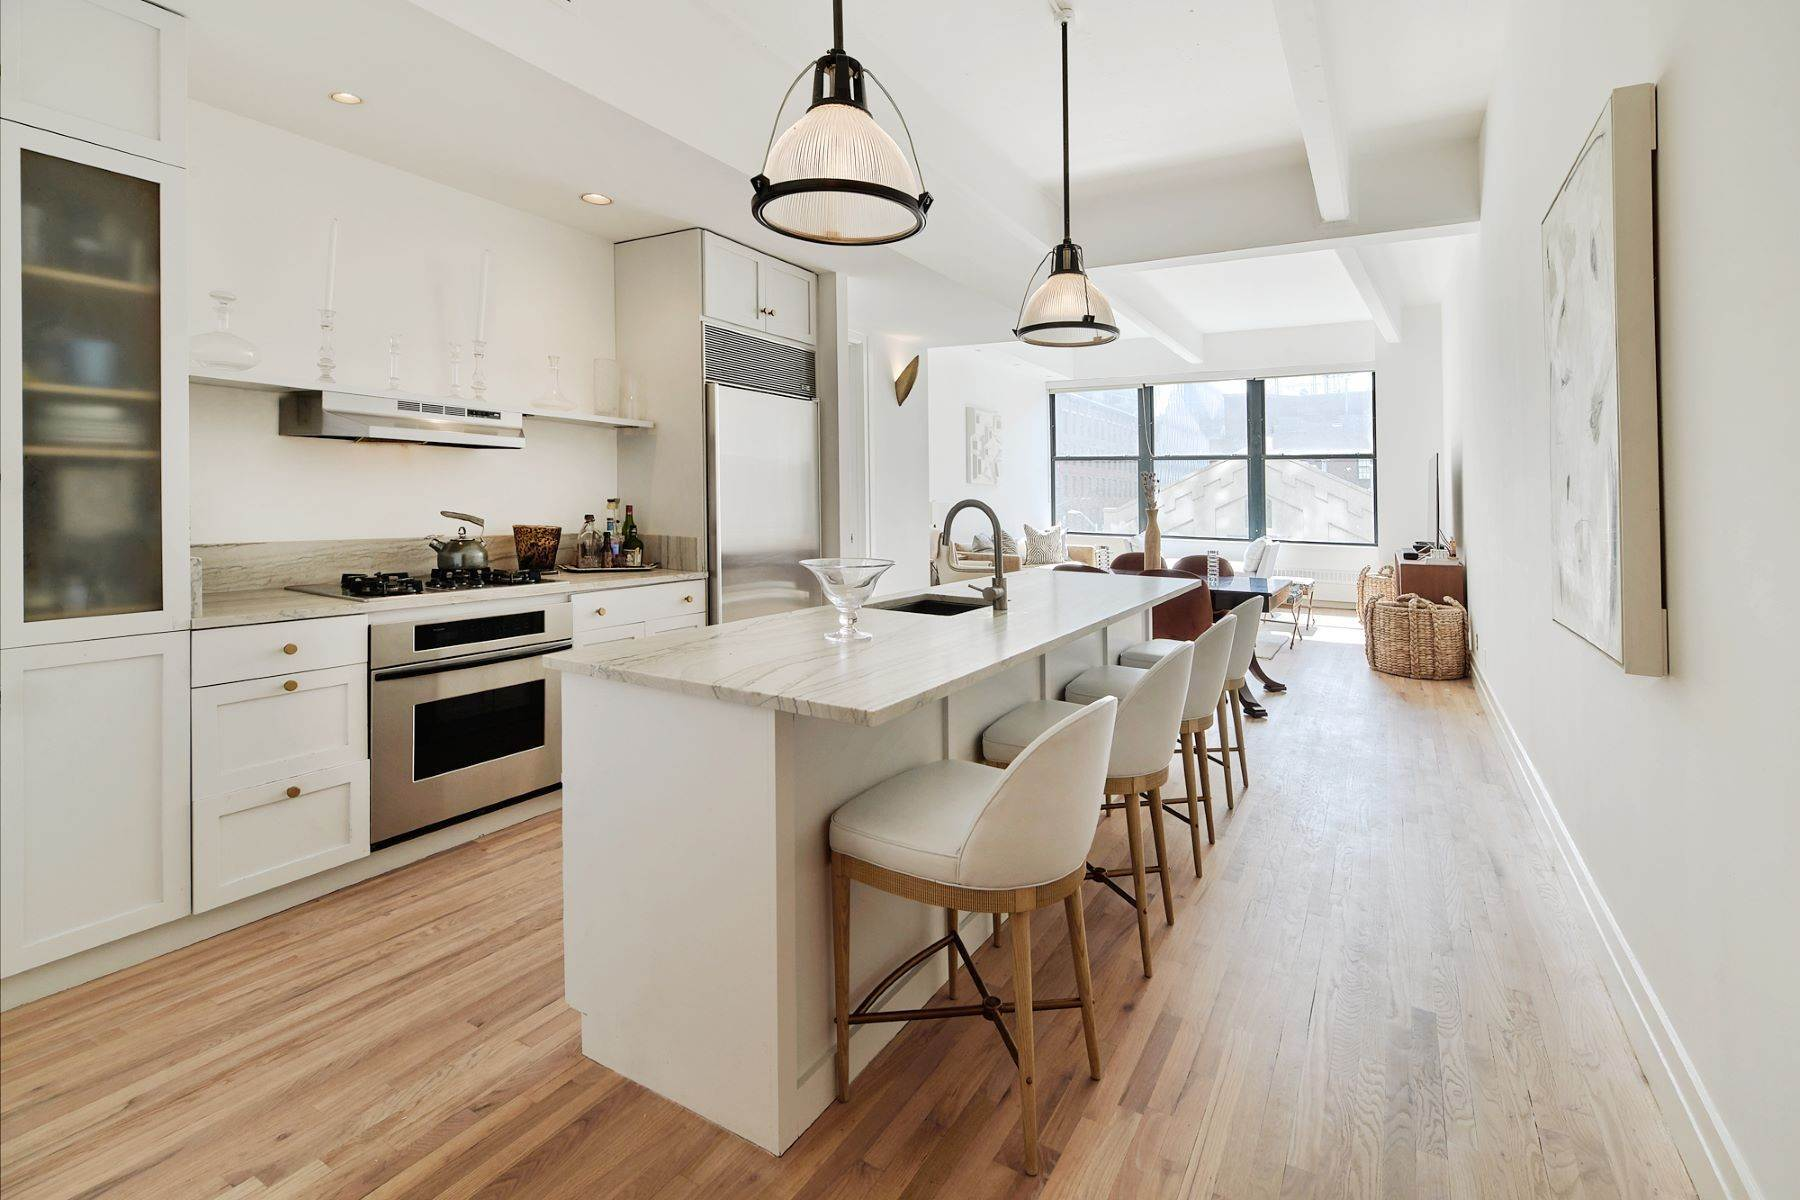 Condominiums lúc Beautiful Clocktower Dumbo Loft 1 Main Street, Apt 2K Brooklyn, New York 11201 Hoa Kỳ